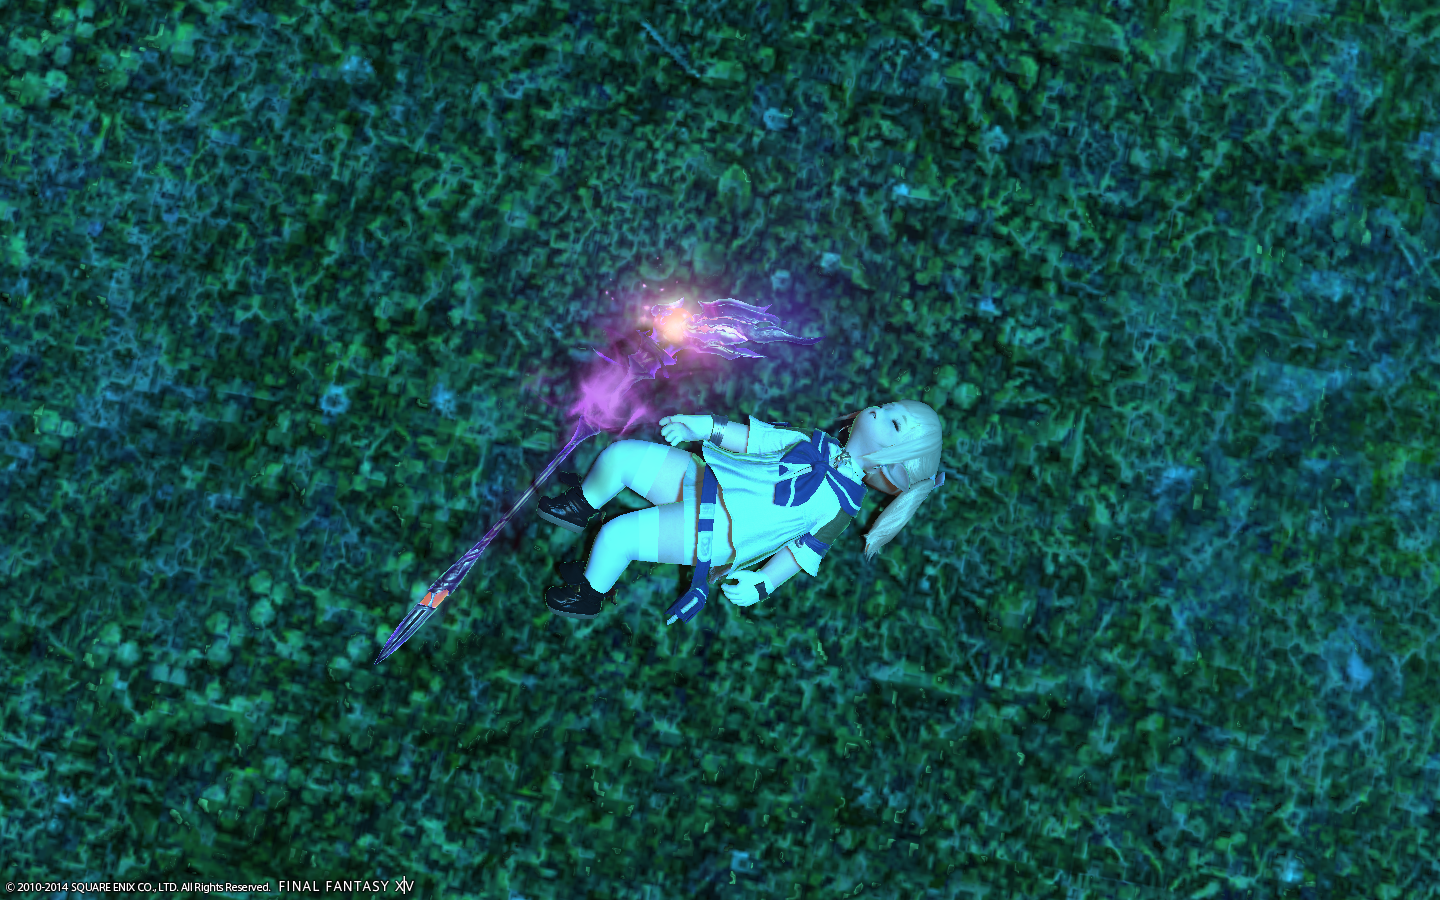 lilbubbles ffxiv know ears really this used shitpost with just like deal forum over month entire grind inb4 lala thread picture cute lalafell coming that fate posting soon